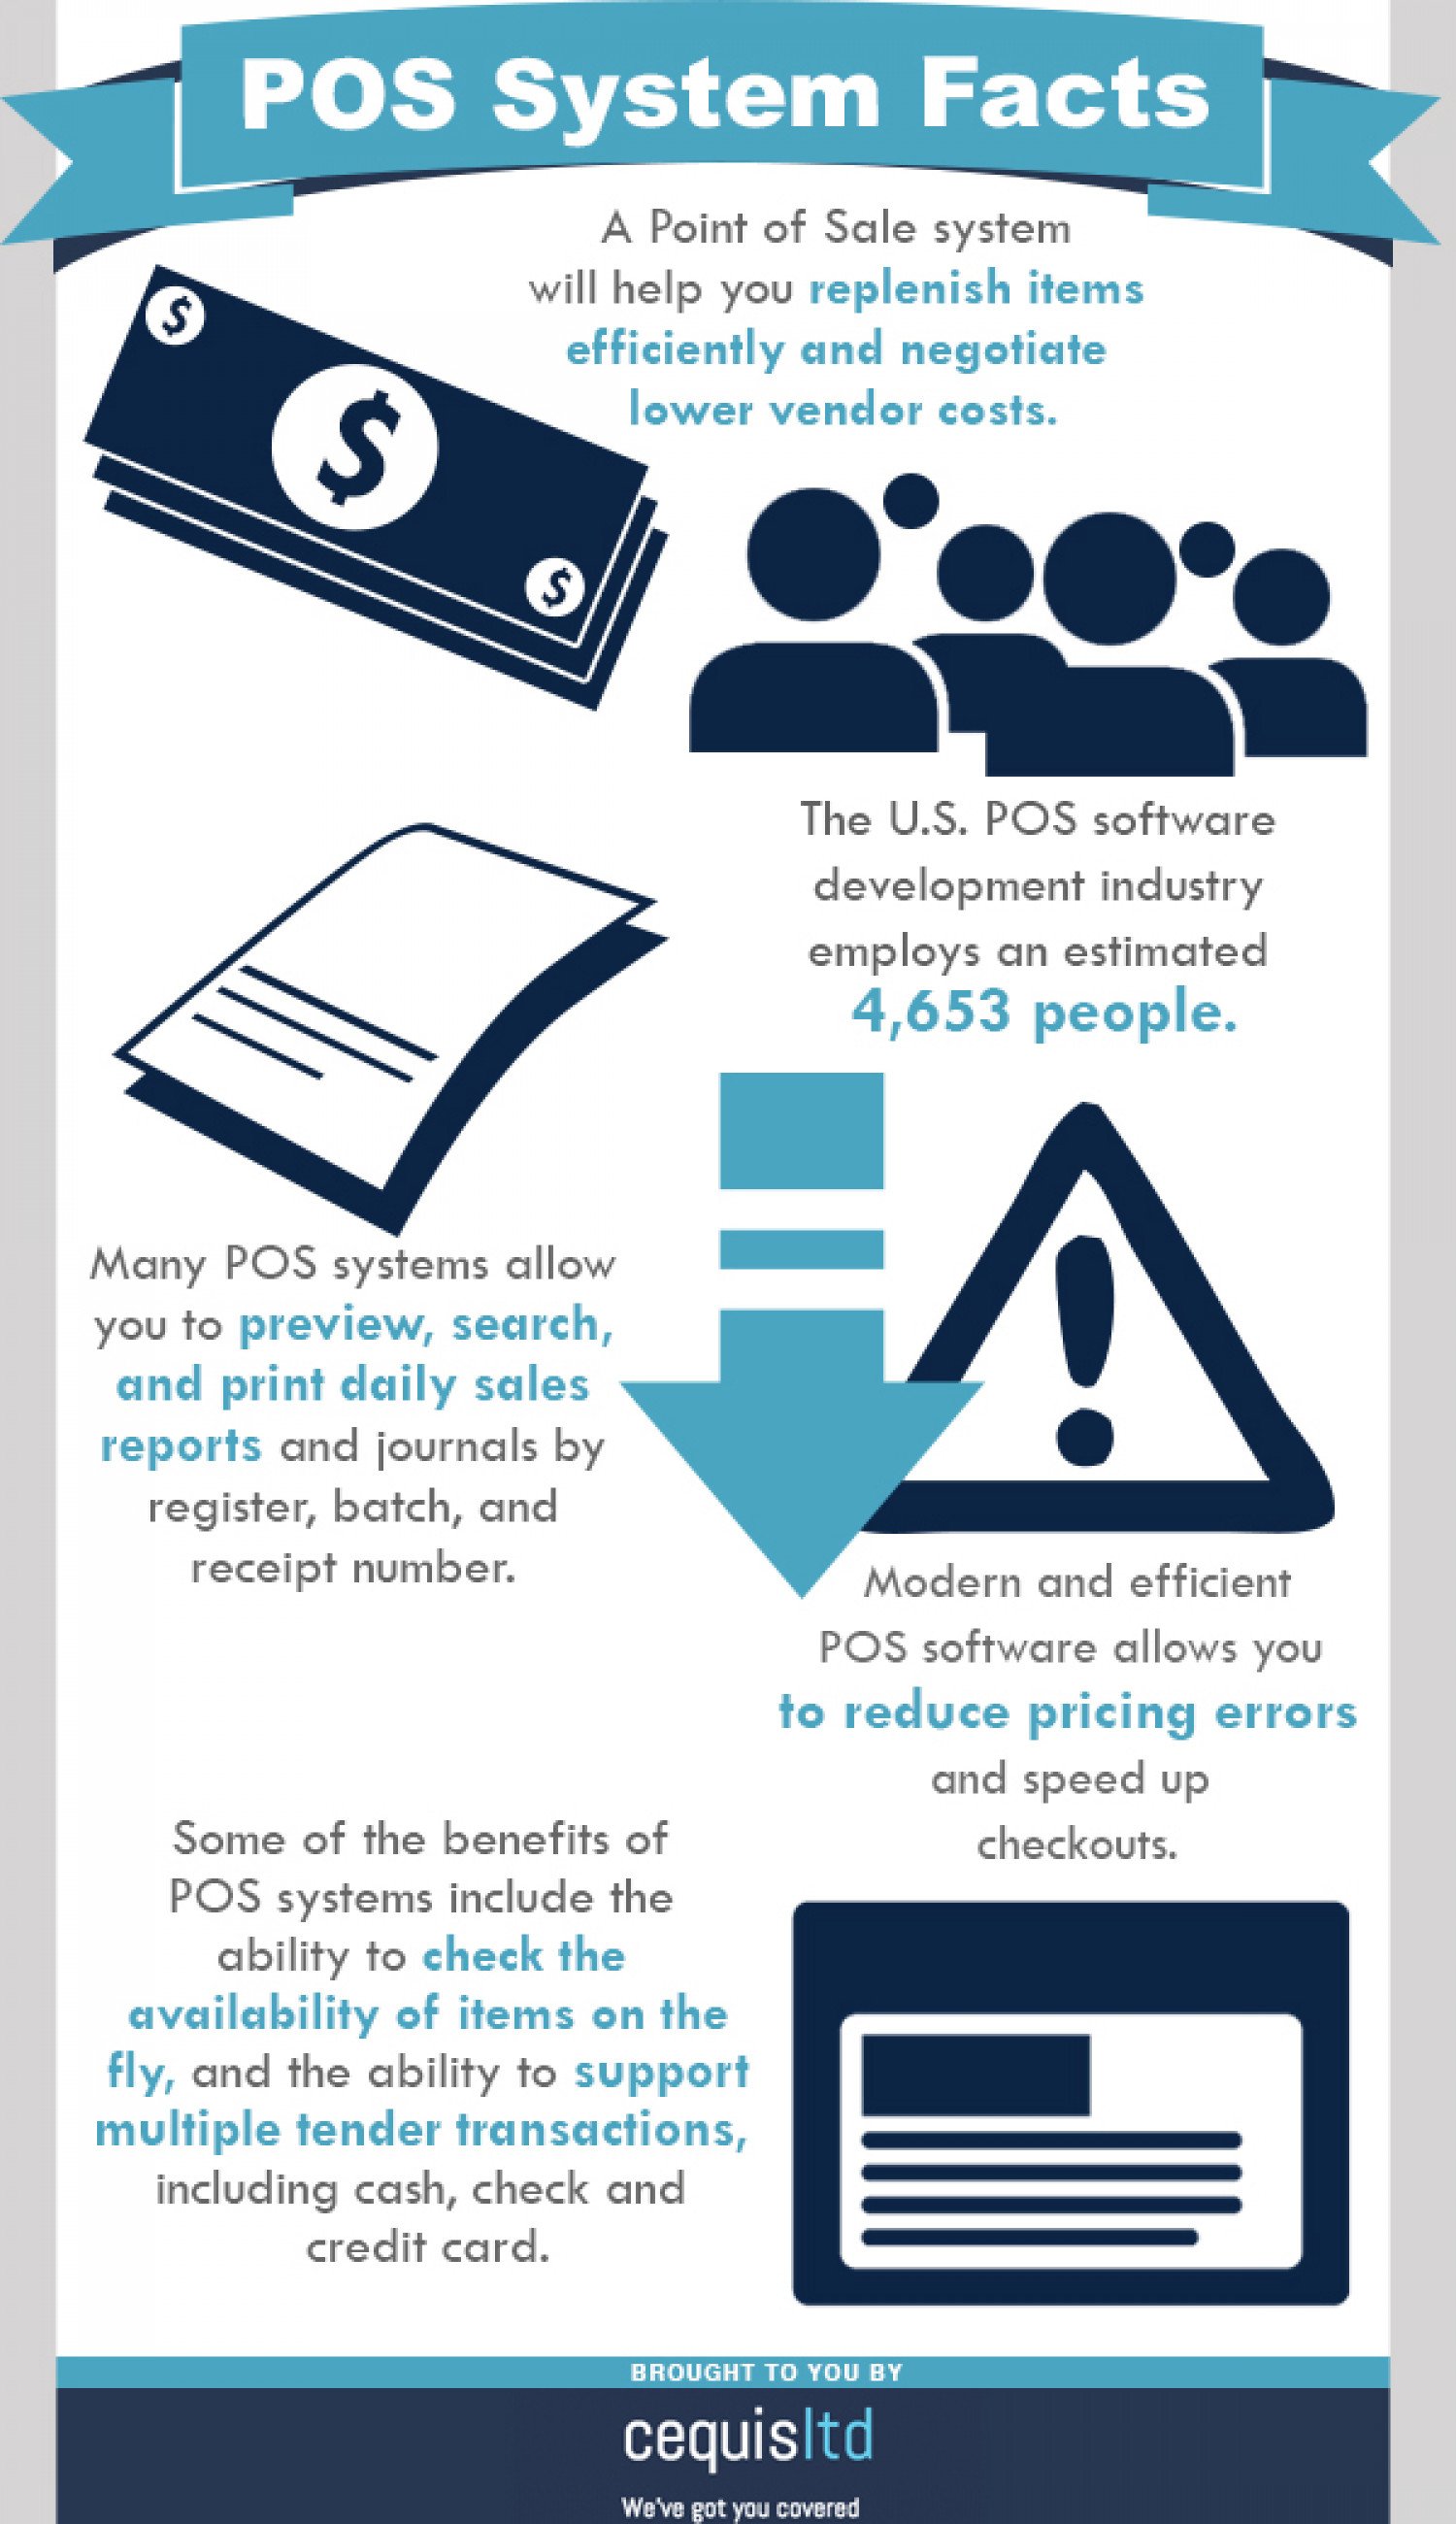 POS System Facts Infographic